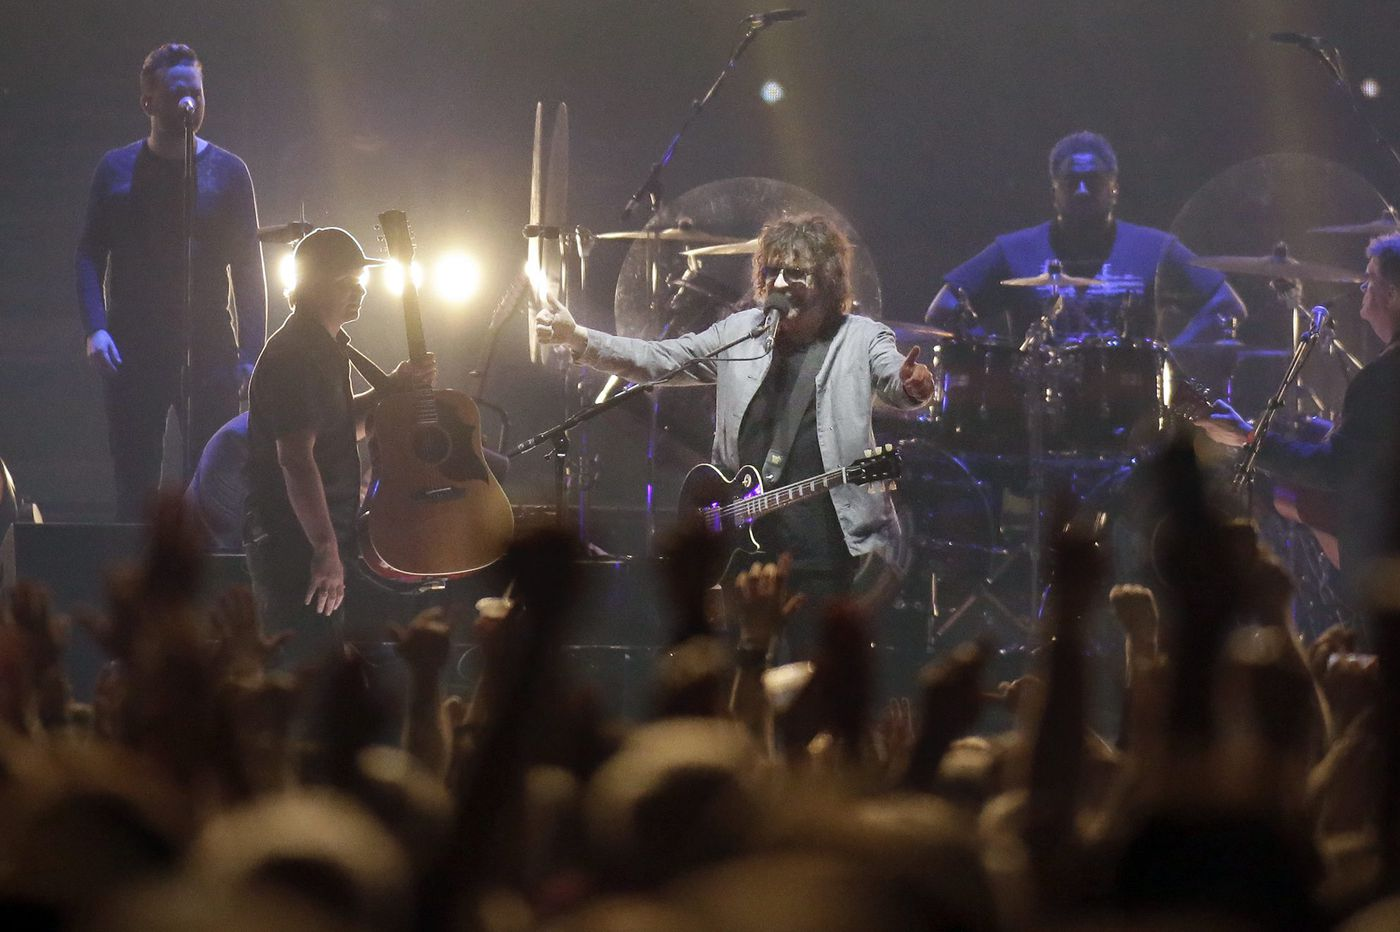 Jeff Lynne and ELO return to Philadelphia for the first time in more than 30 years